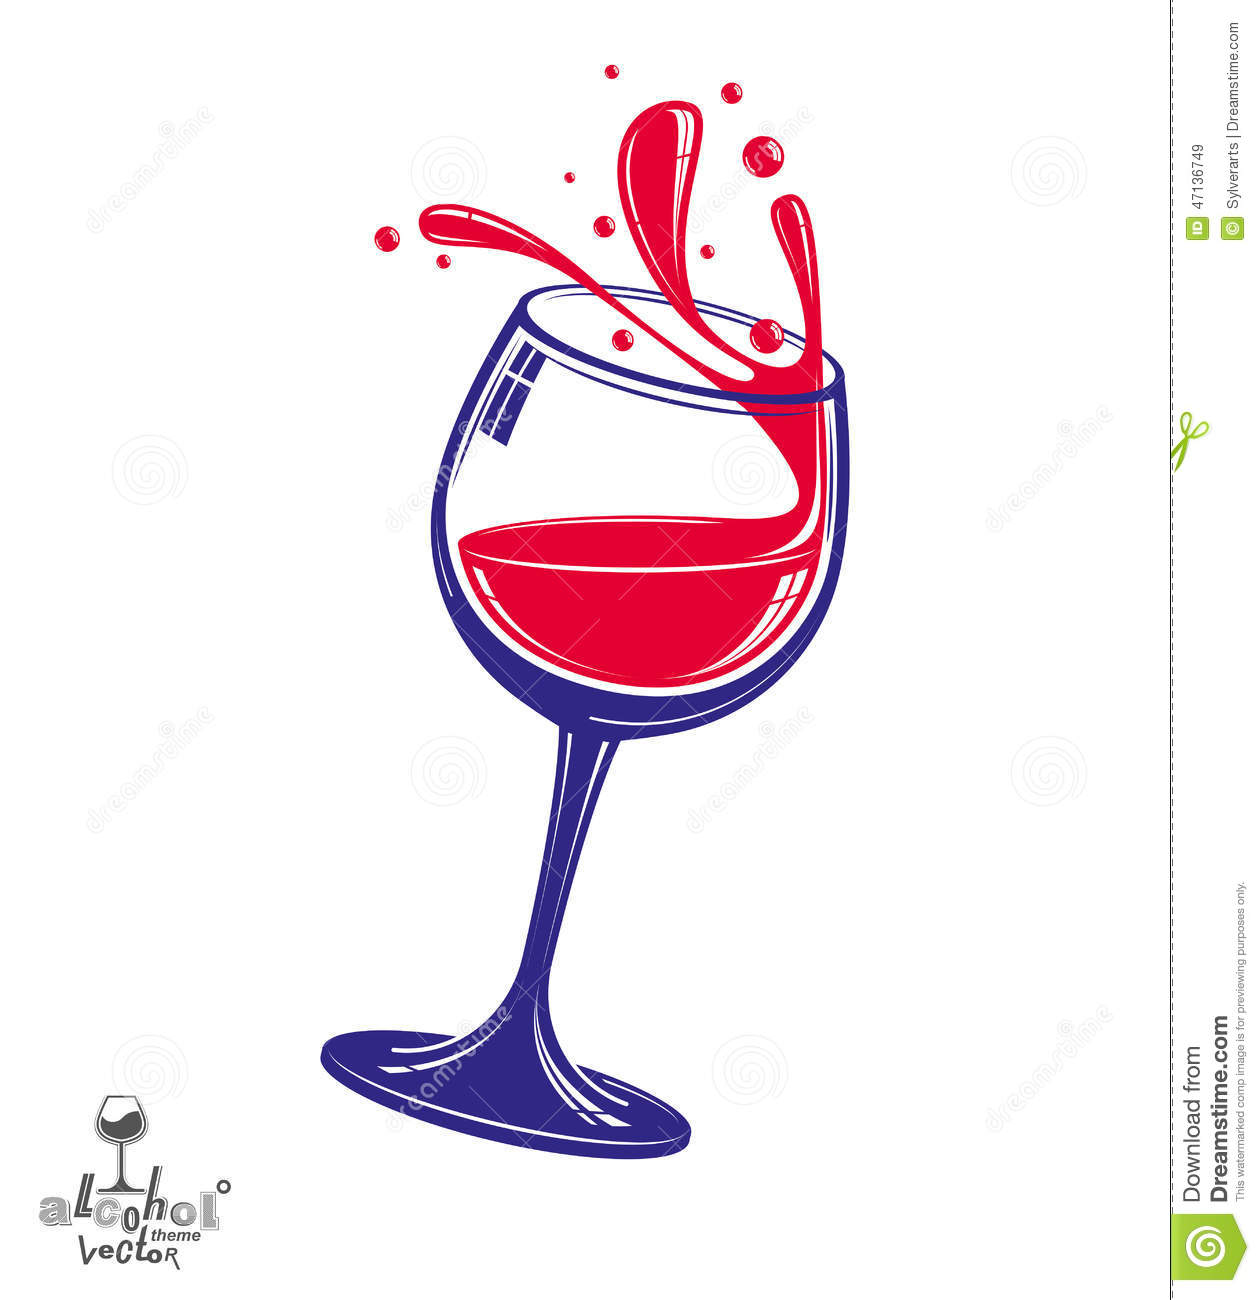 Weinglas Clipart Kostenlos Alcohol Theme Vector Art Illustration 3d Realistic Wine